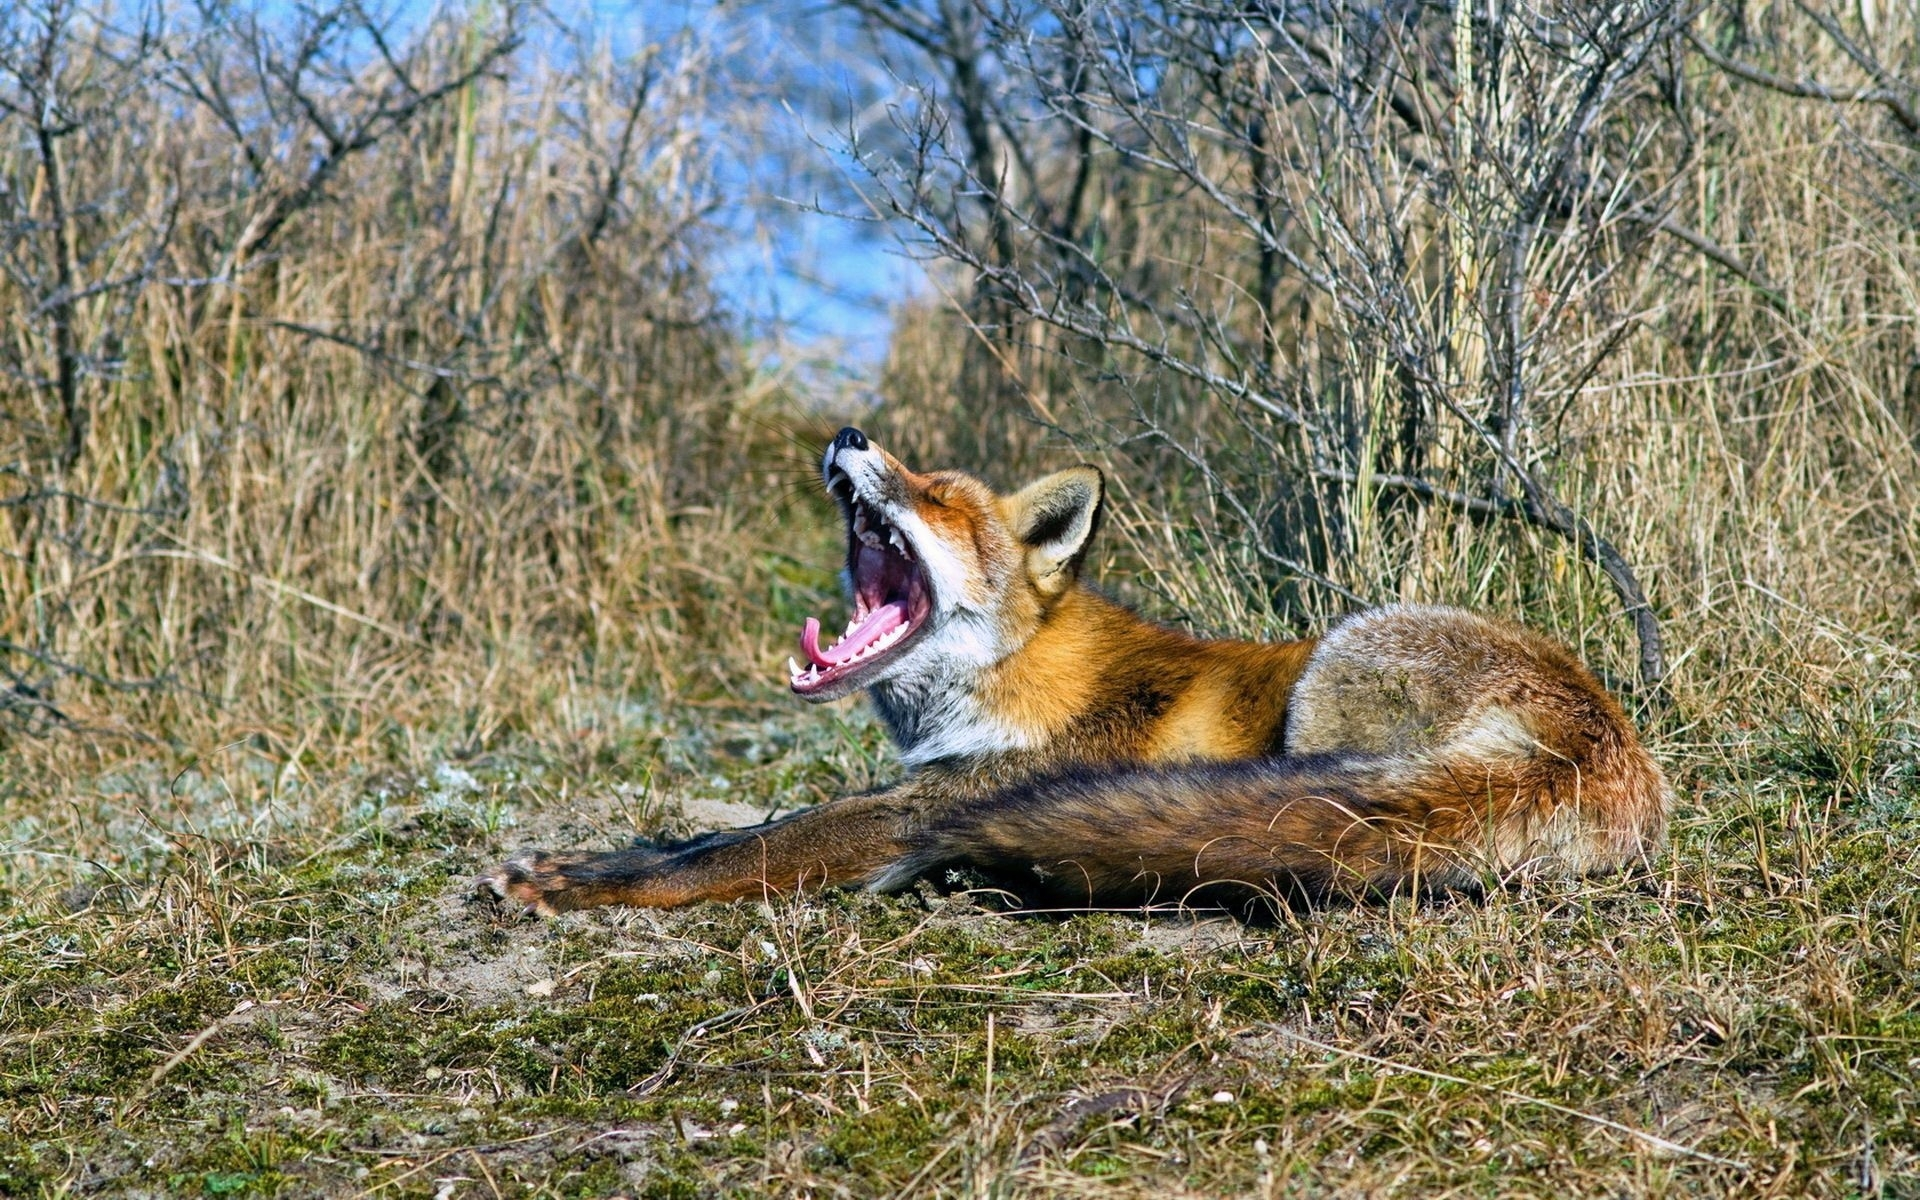 25605 download wallpaper Animals, Fox screensavers and pictures for free